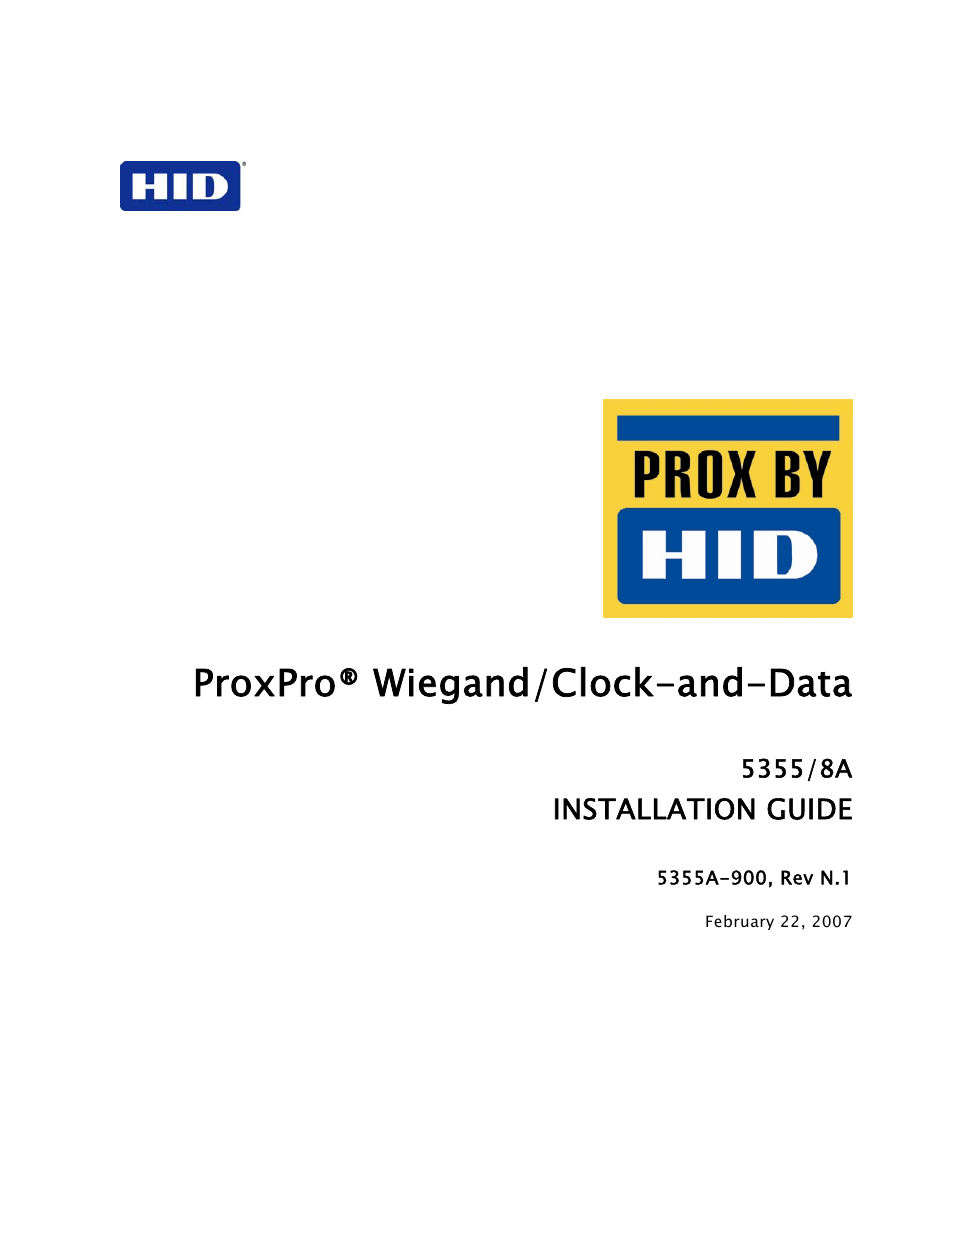 Hid Proxpro Installation Guide User Manual 14 Pages Access Wiring Diagram